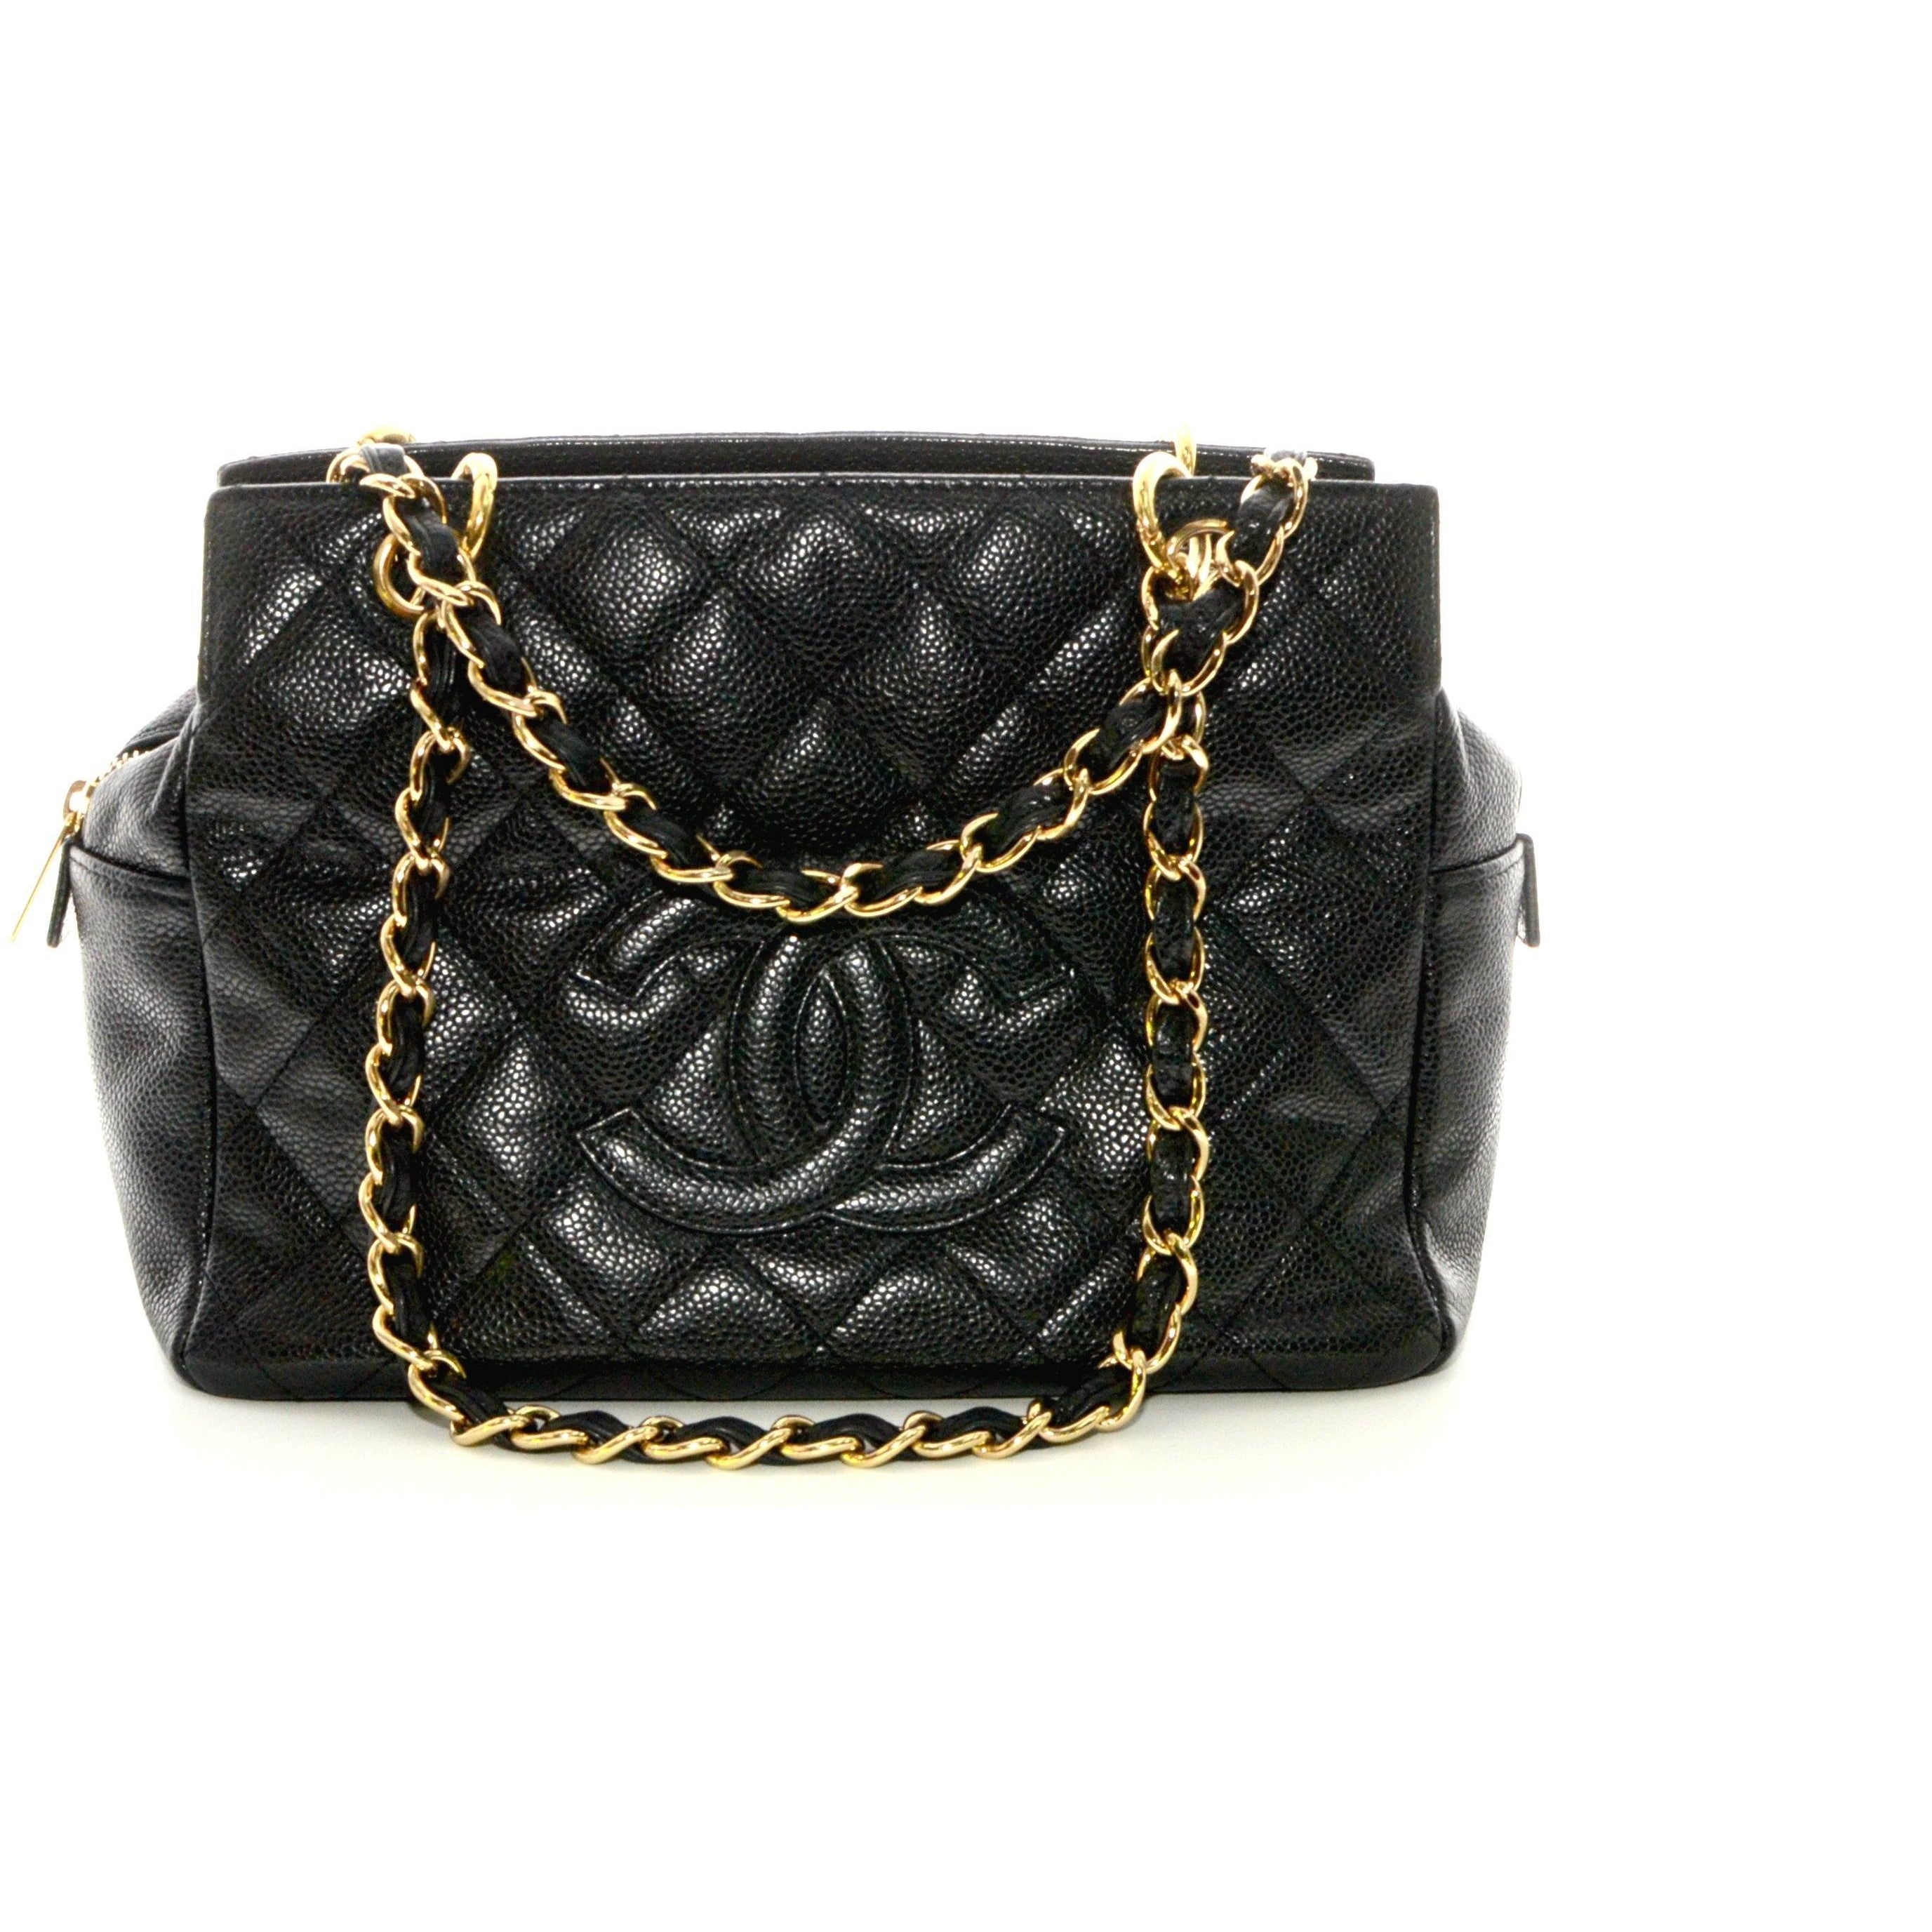 4240e50138628d Chanel Caviar Small Shopping Tote Bag Chain Shoulder Black Quilted. – The Vintage  Contessa & Times Past